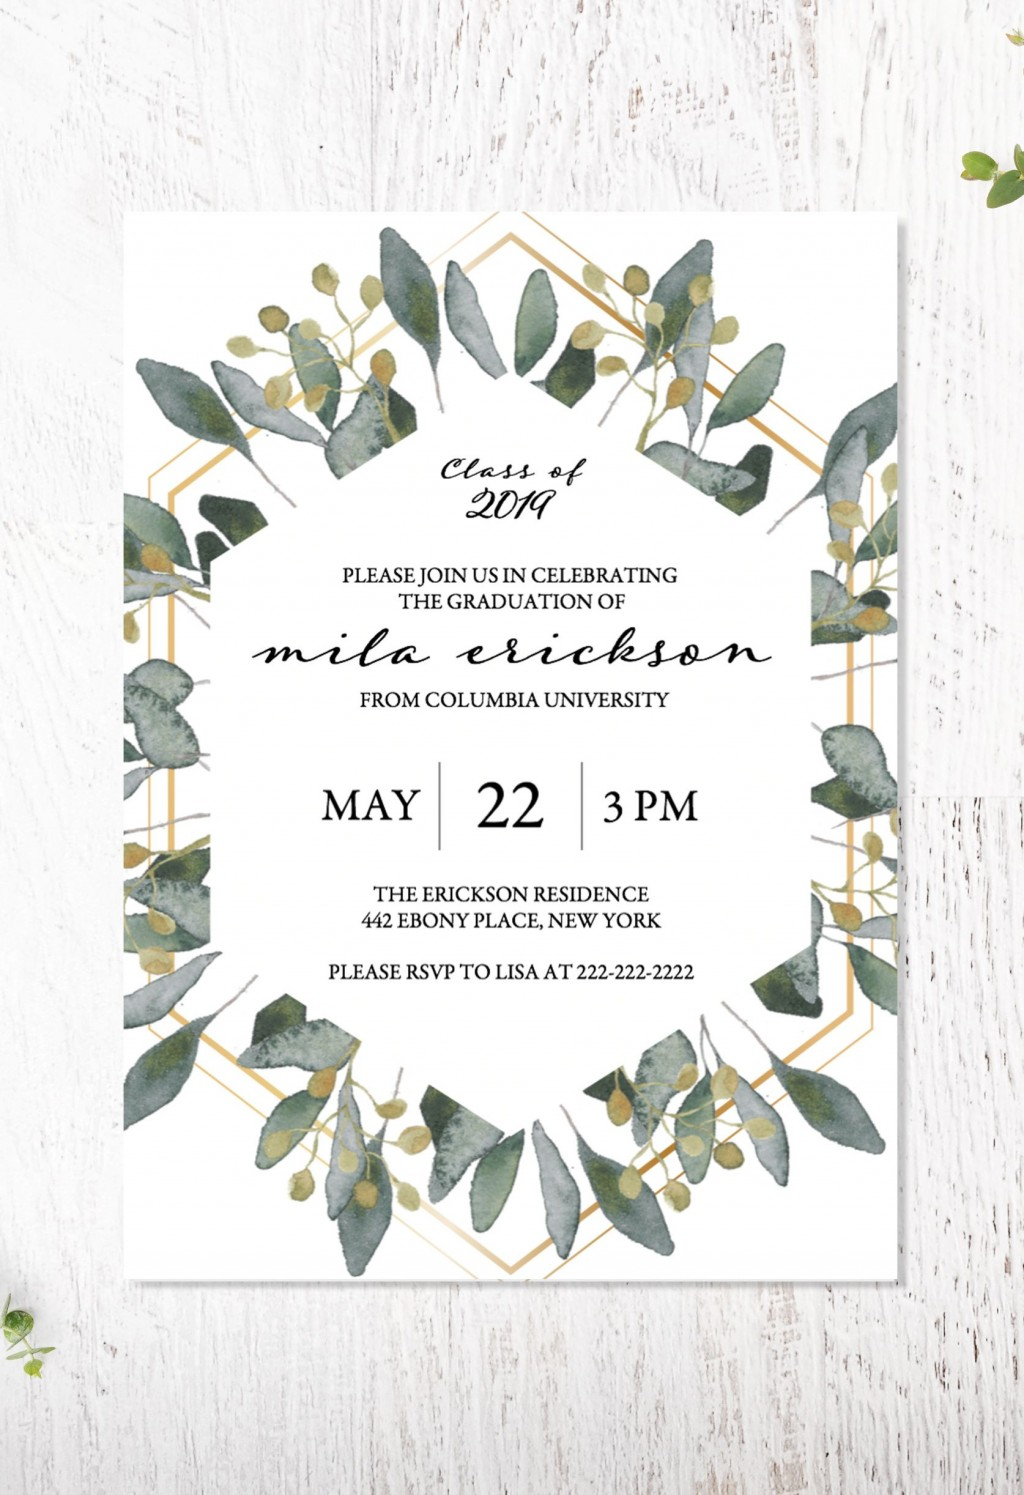 003 Archaicawful College Graduation Invitation Template Design  Party Free For WordLarge